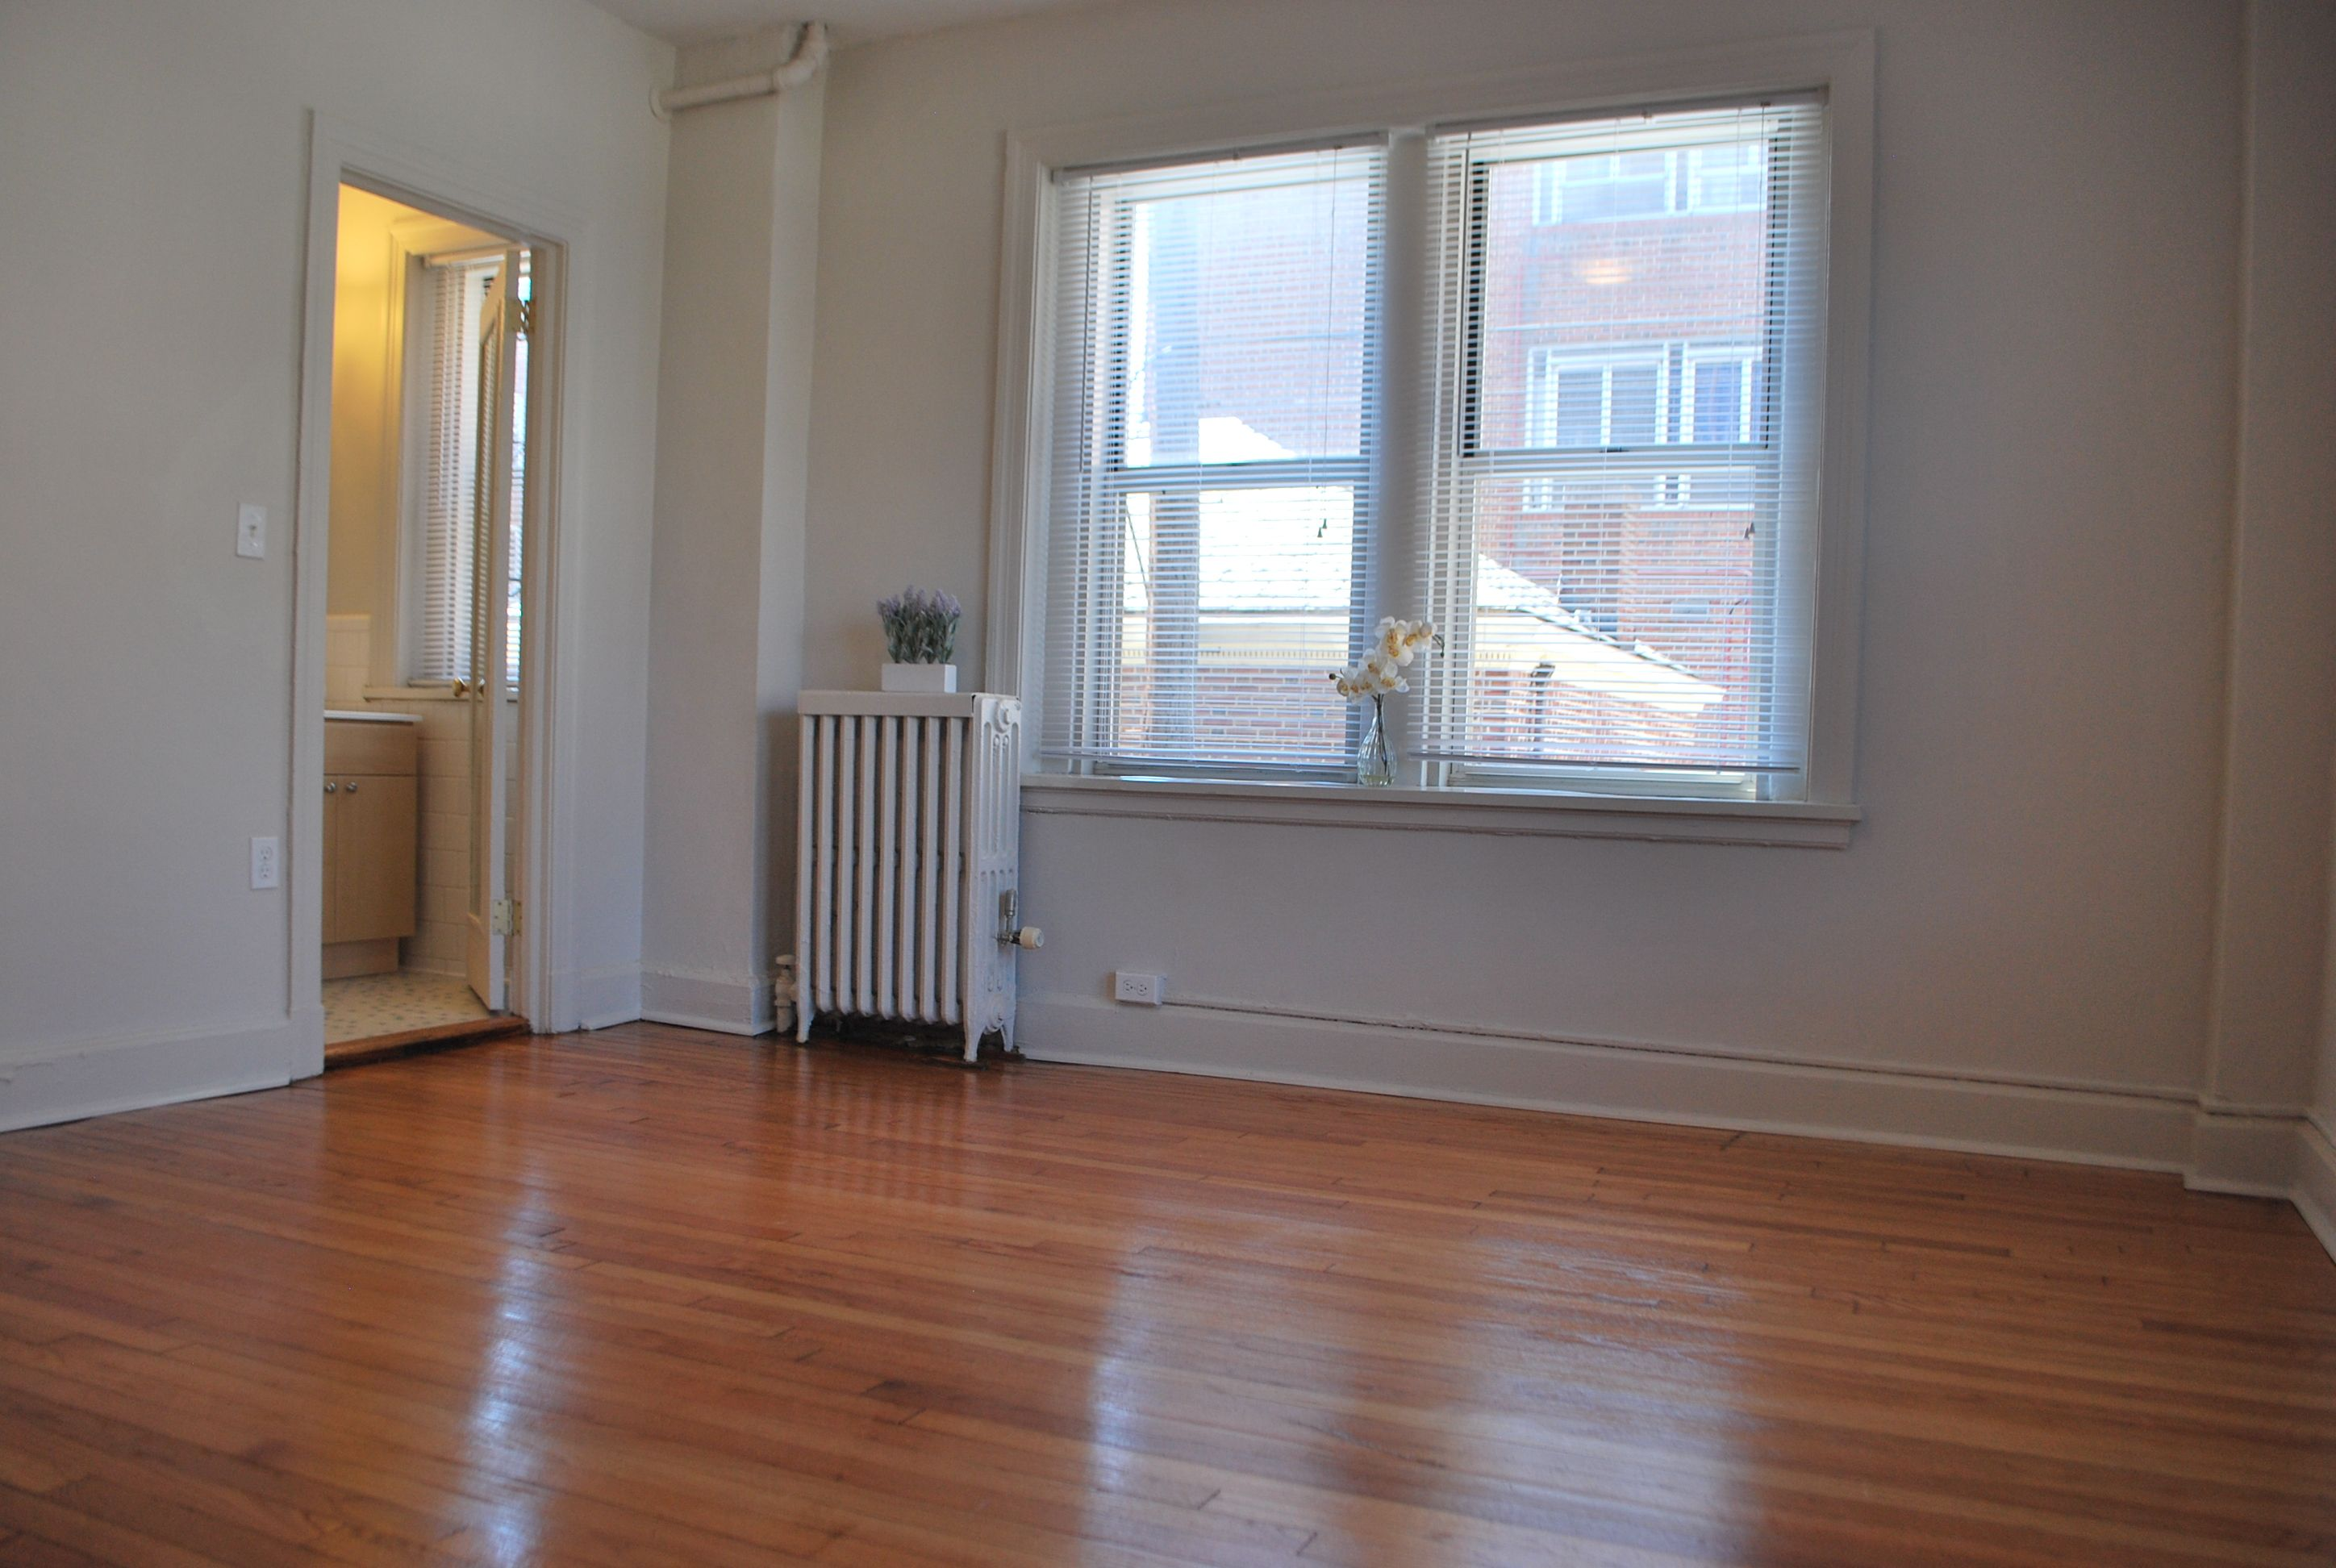 Large Studio Apartments At Jefferson House In Charles Village Baltimore Only A Short Walk To Johns Hopkins University So It House Bedroom Layouts Apartment